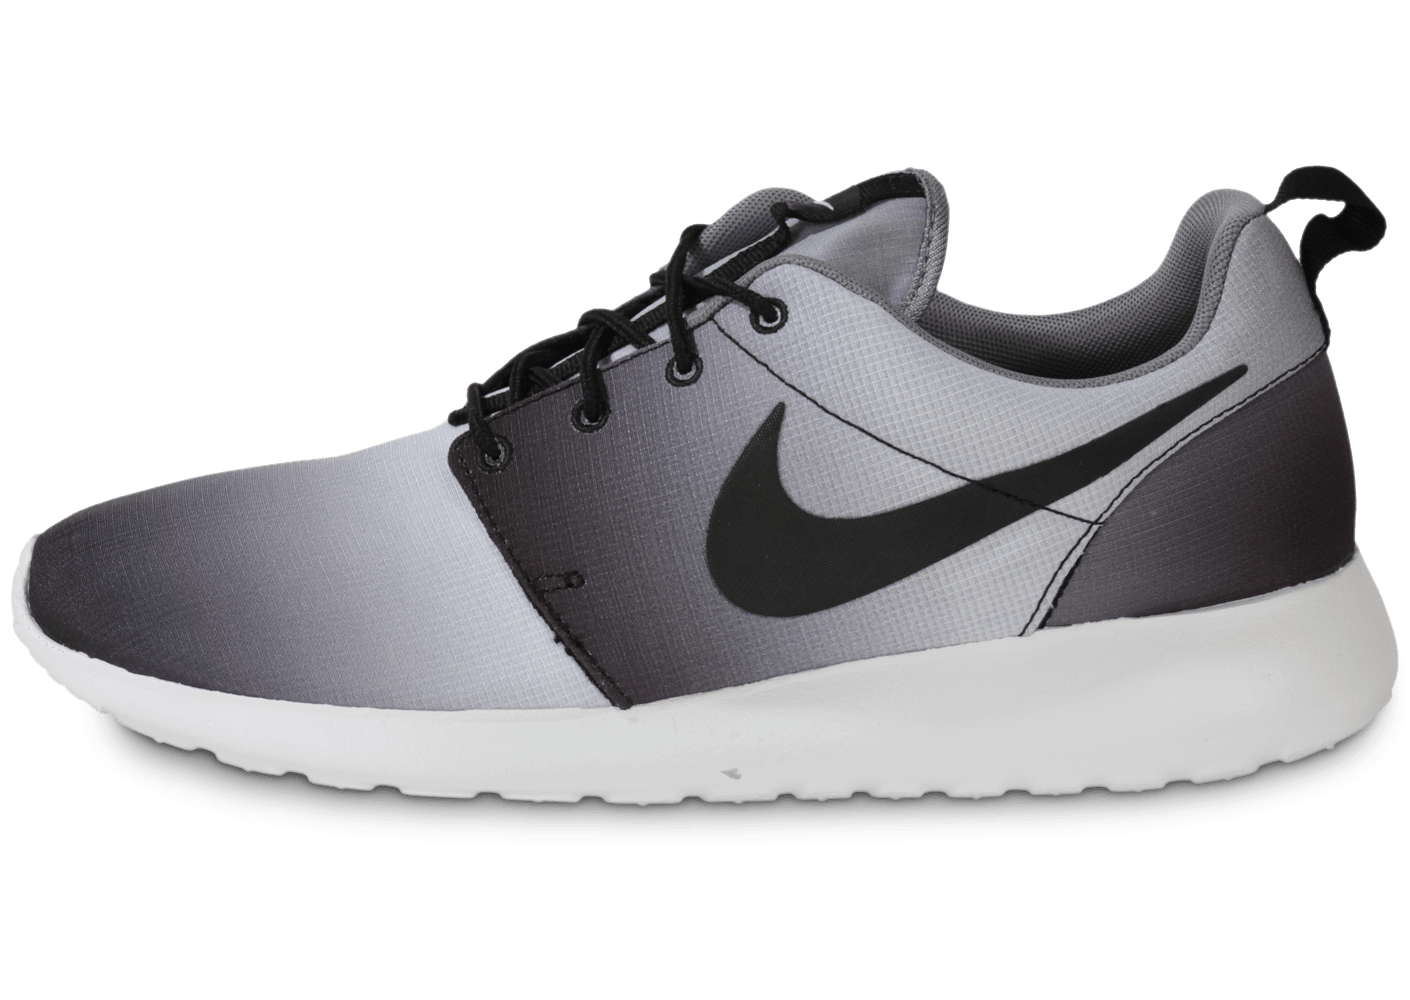 huge discount d3a59 5f405 Nike Roshe Run Print Faded Noir Blanc - Chaussures Baskets homme - Chausport